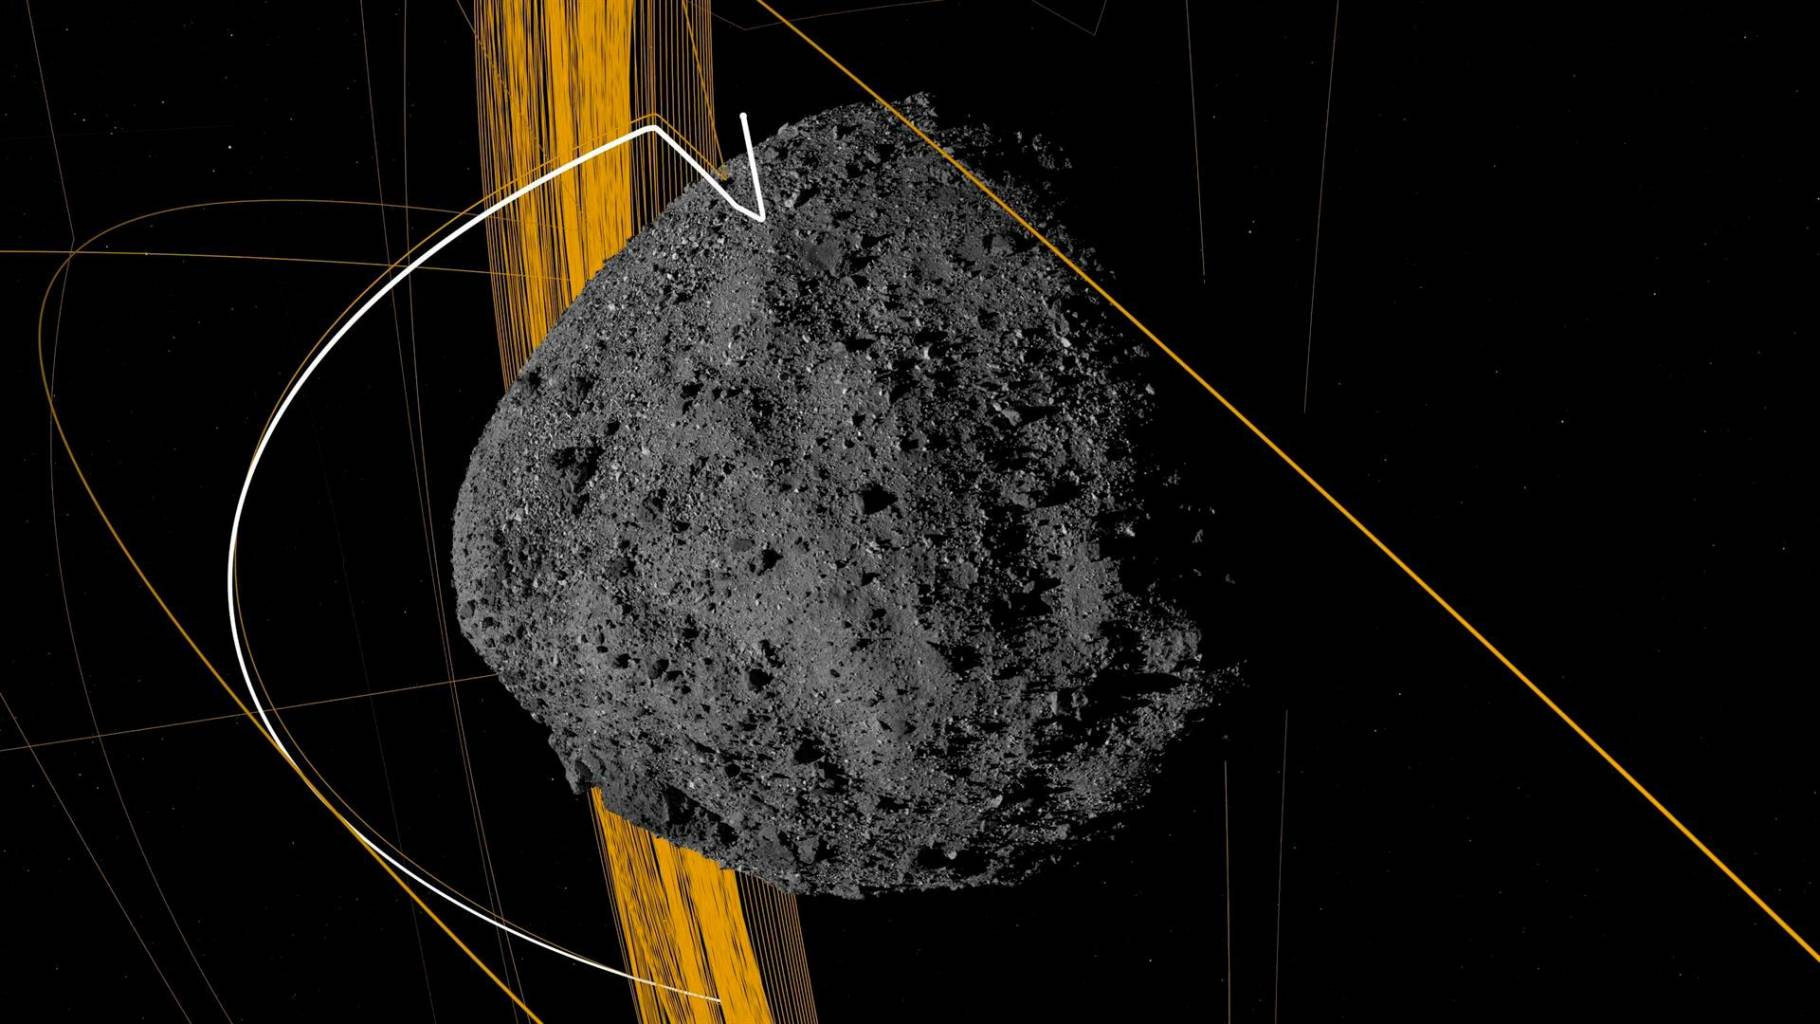 According to NASA, a large asteroid could collide with Earth starting in 2135